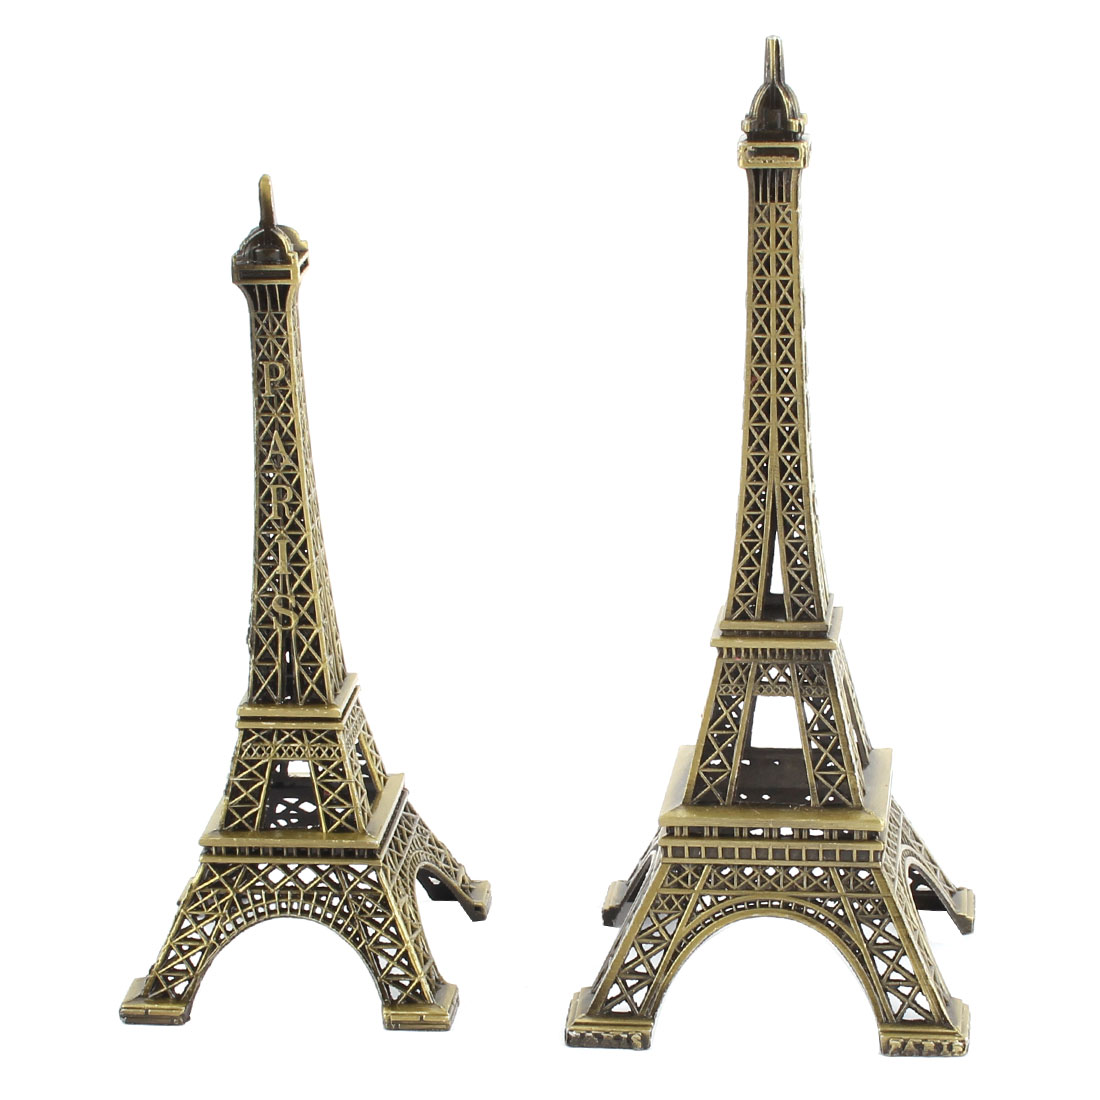 Apartment Metal Miniature Statue Eiffel Tower Model Souvenir Ornament 2 in 1